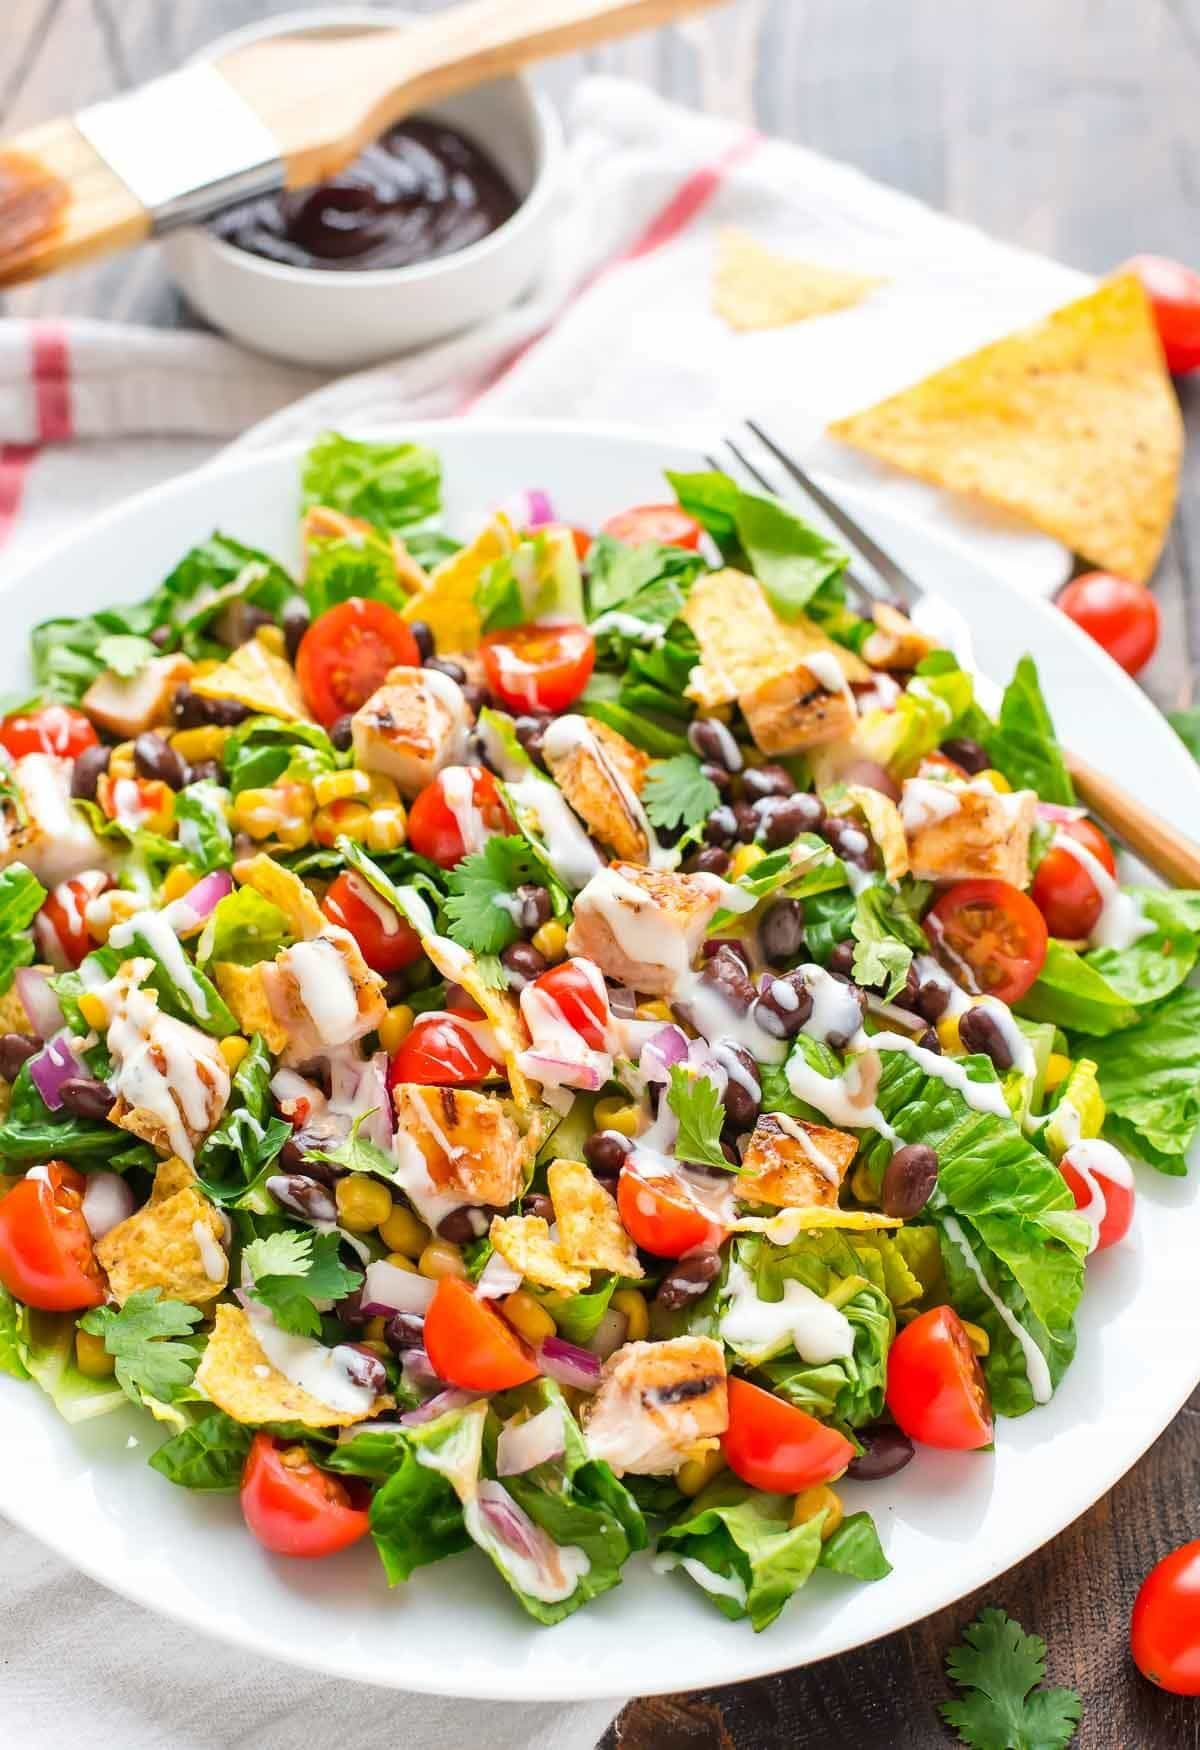 Bbq Chicken Salad Recipe This Healthy Salad Is So Quick